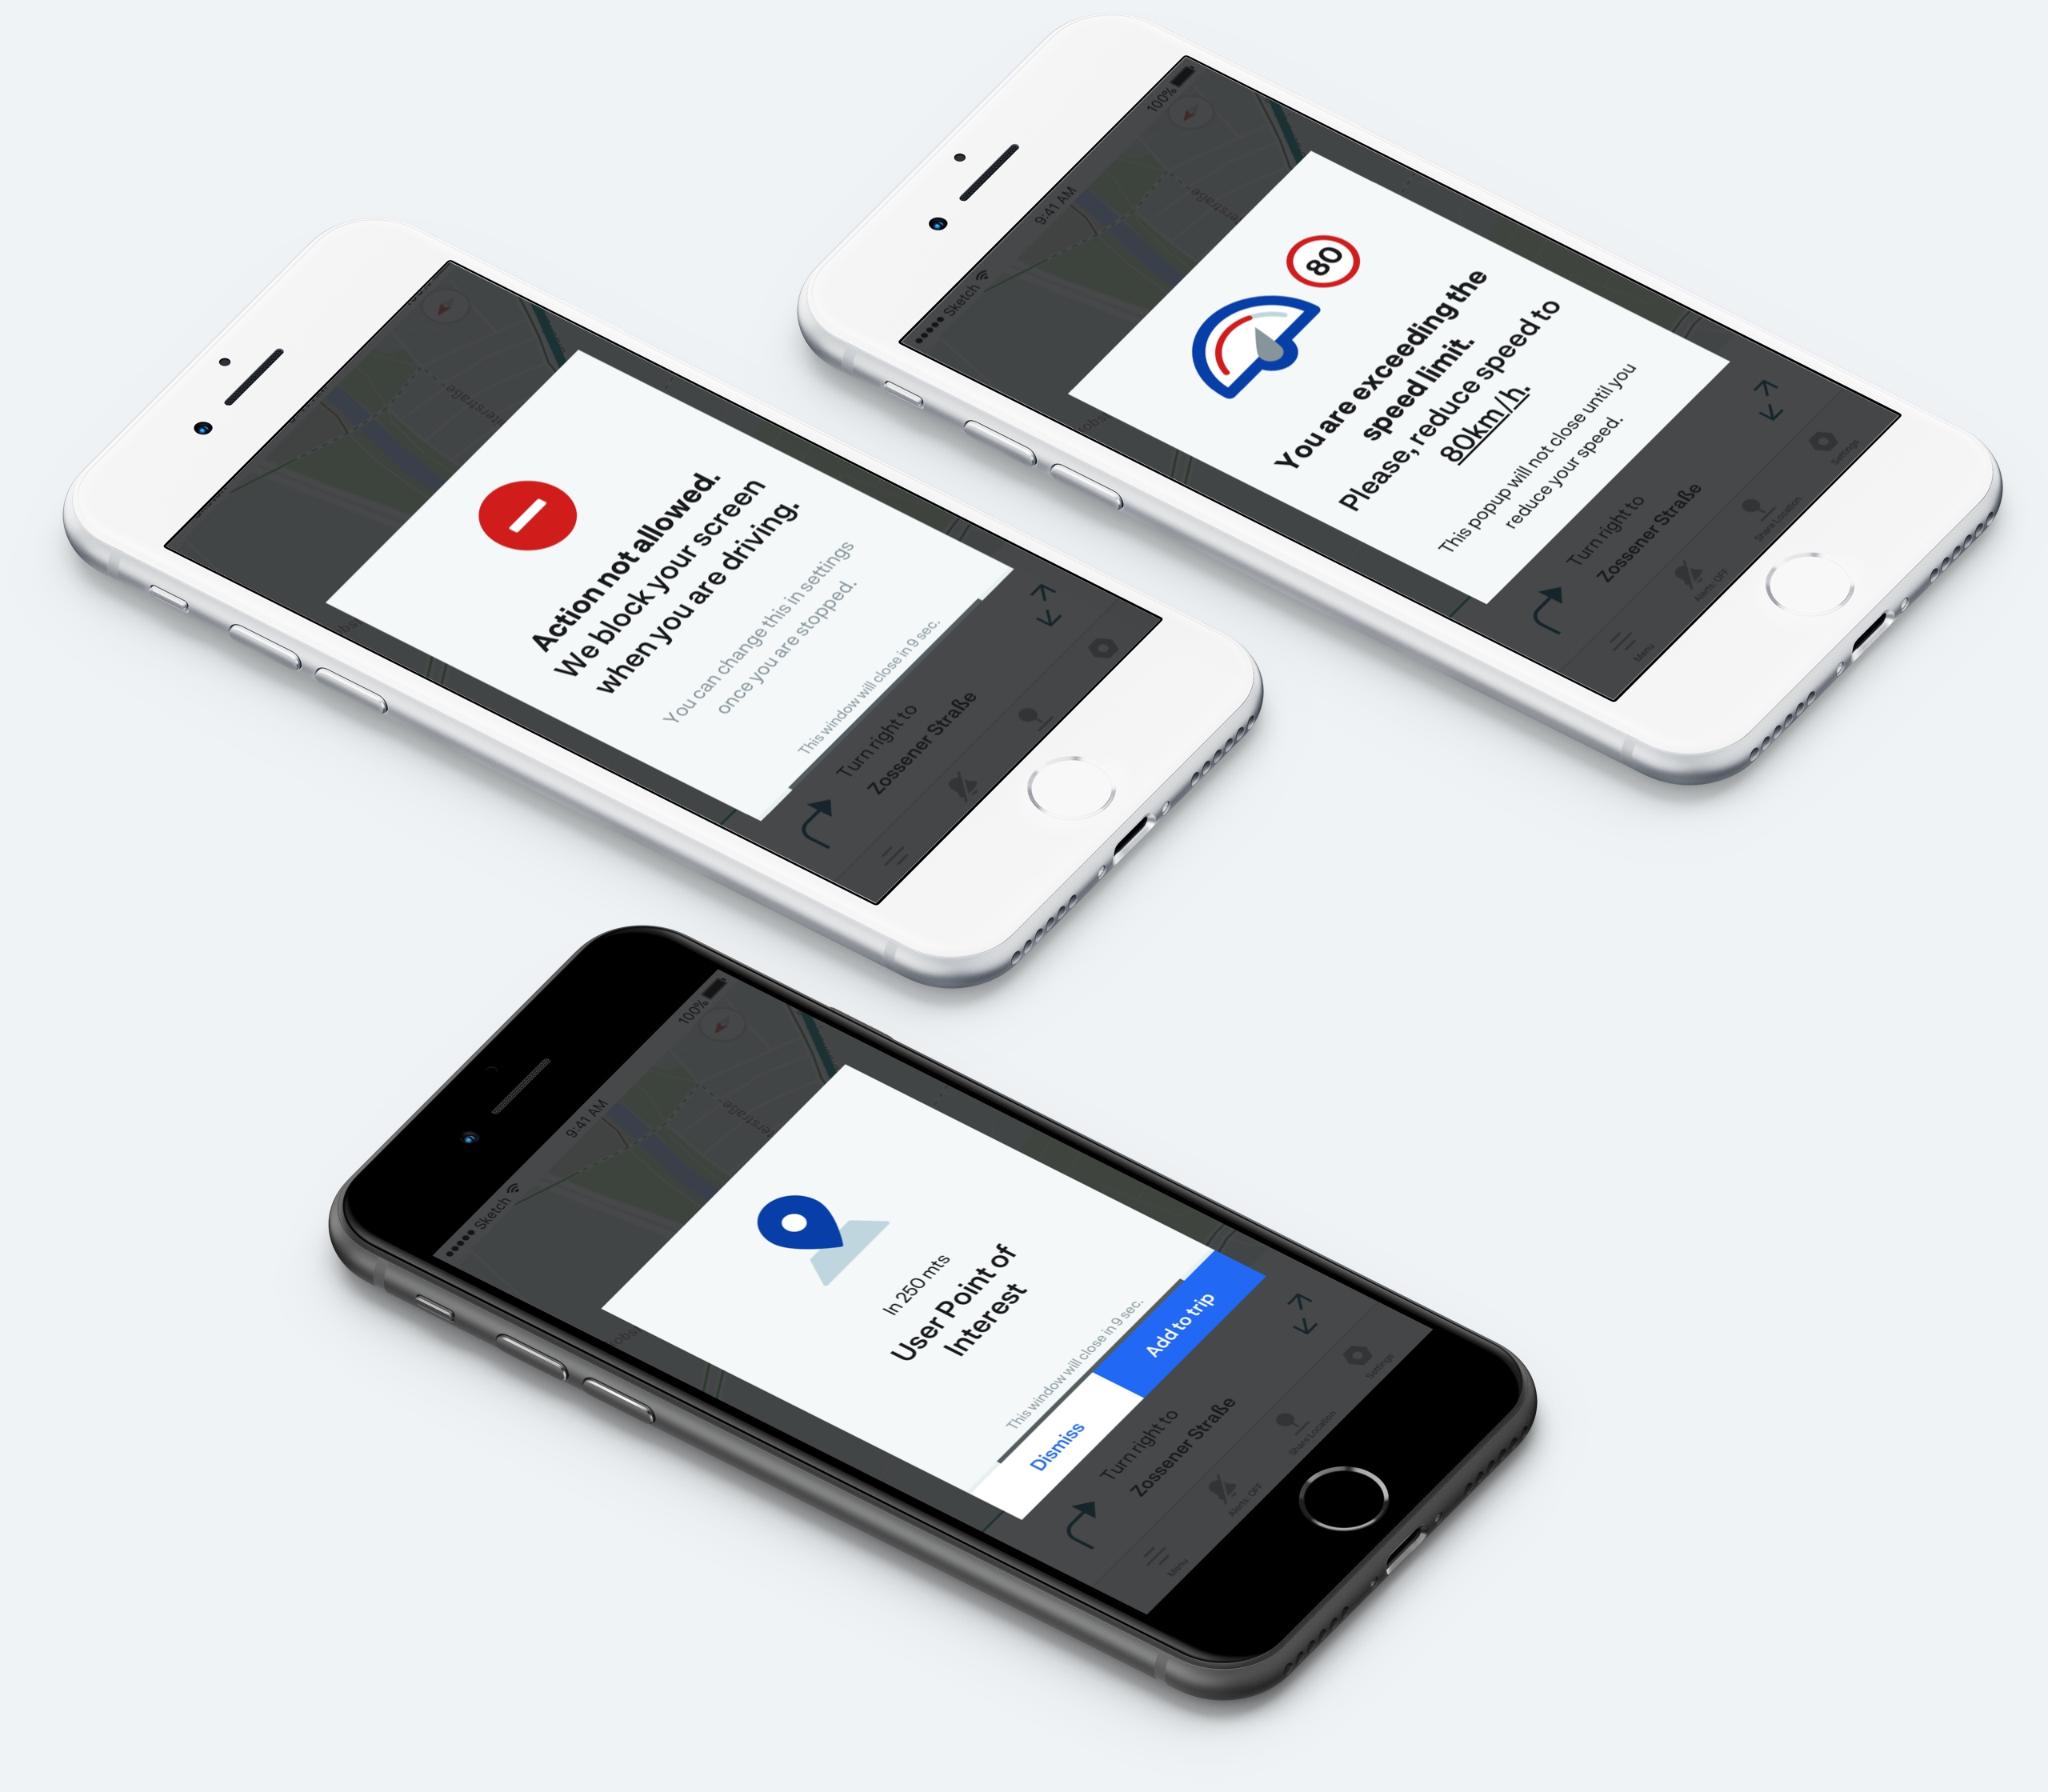 Sounddrive iOS app design by Manu Franco-UX